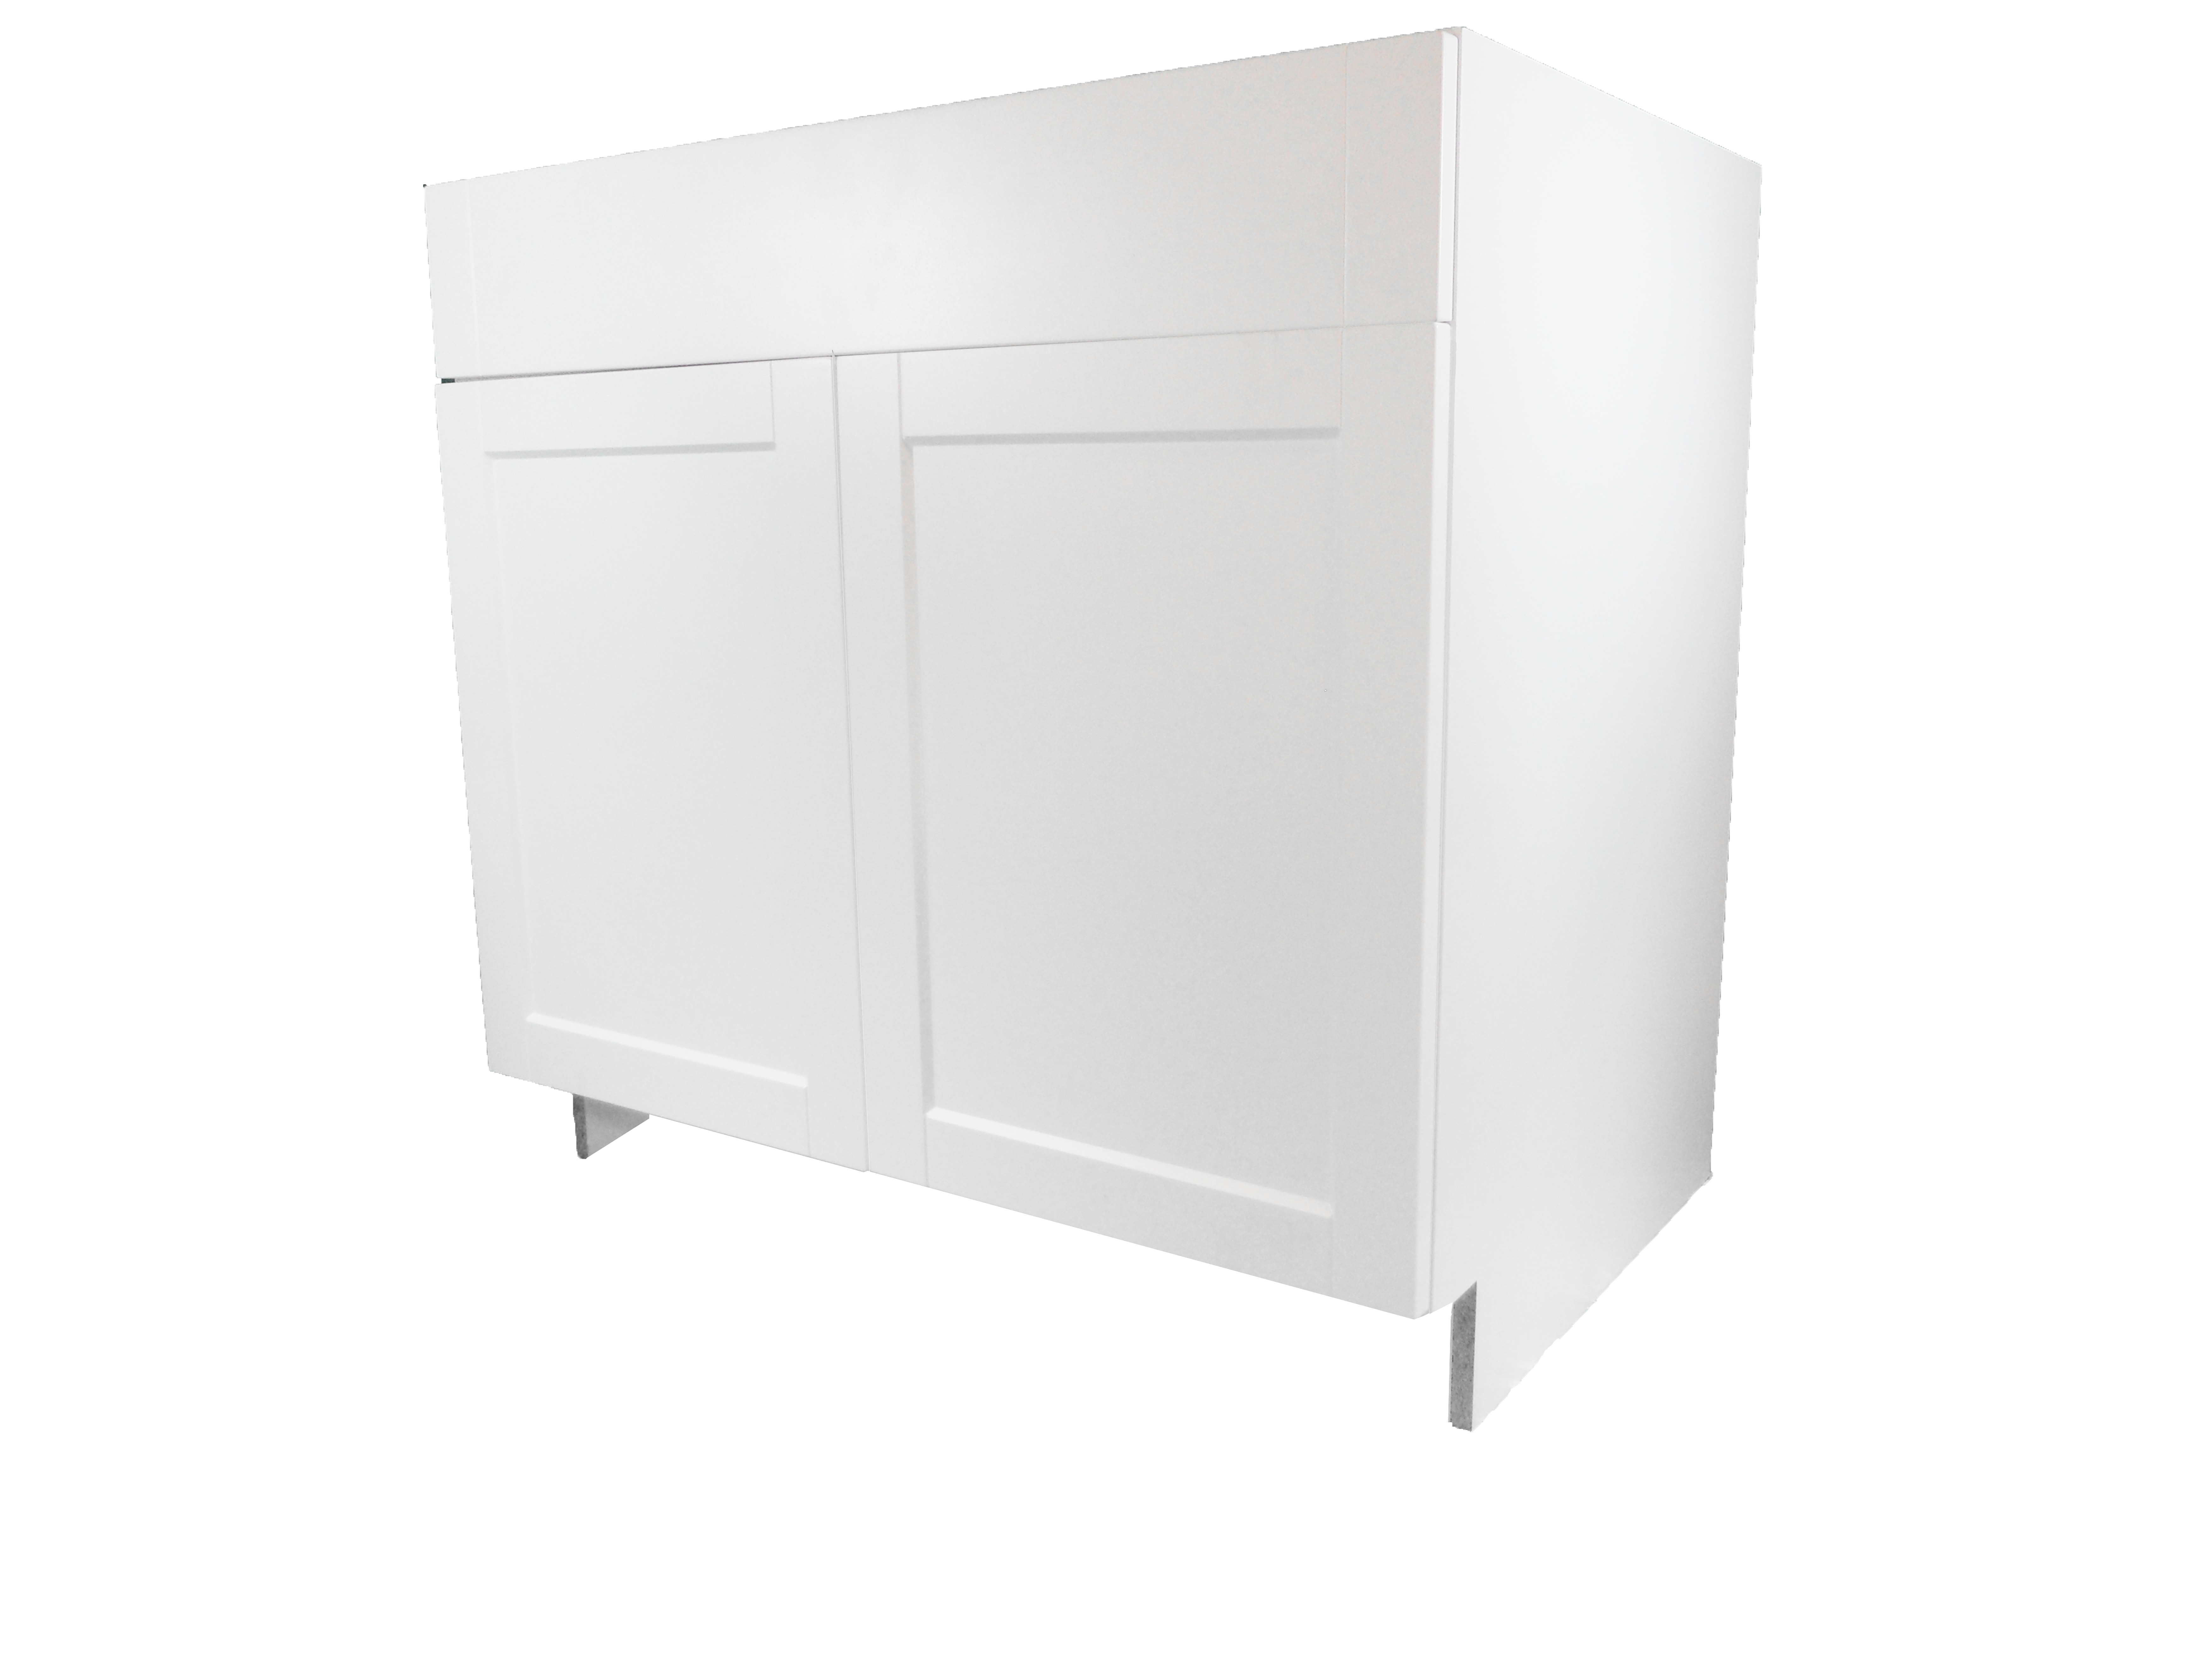 Base Cabinet with Drawer/2 Door / Flat Panel White / 24 Solaire White 0